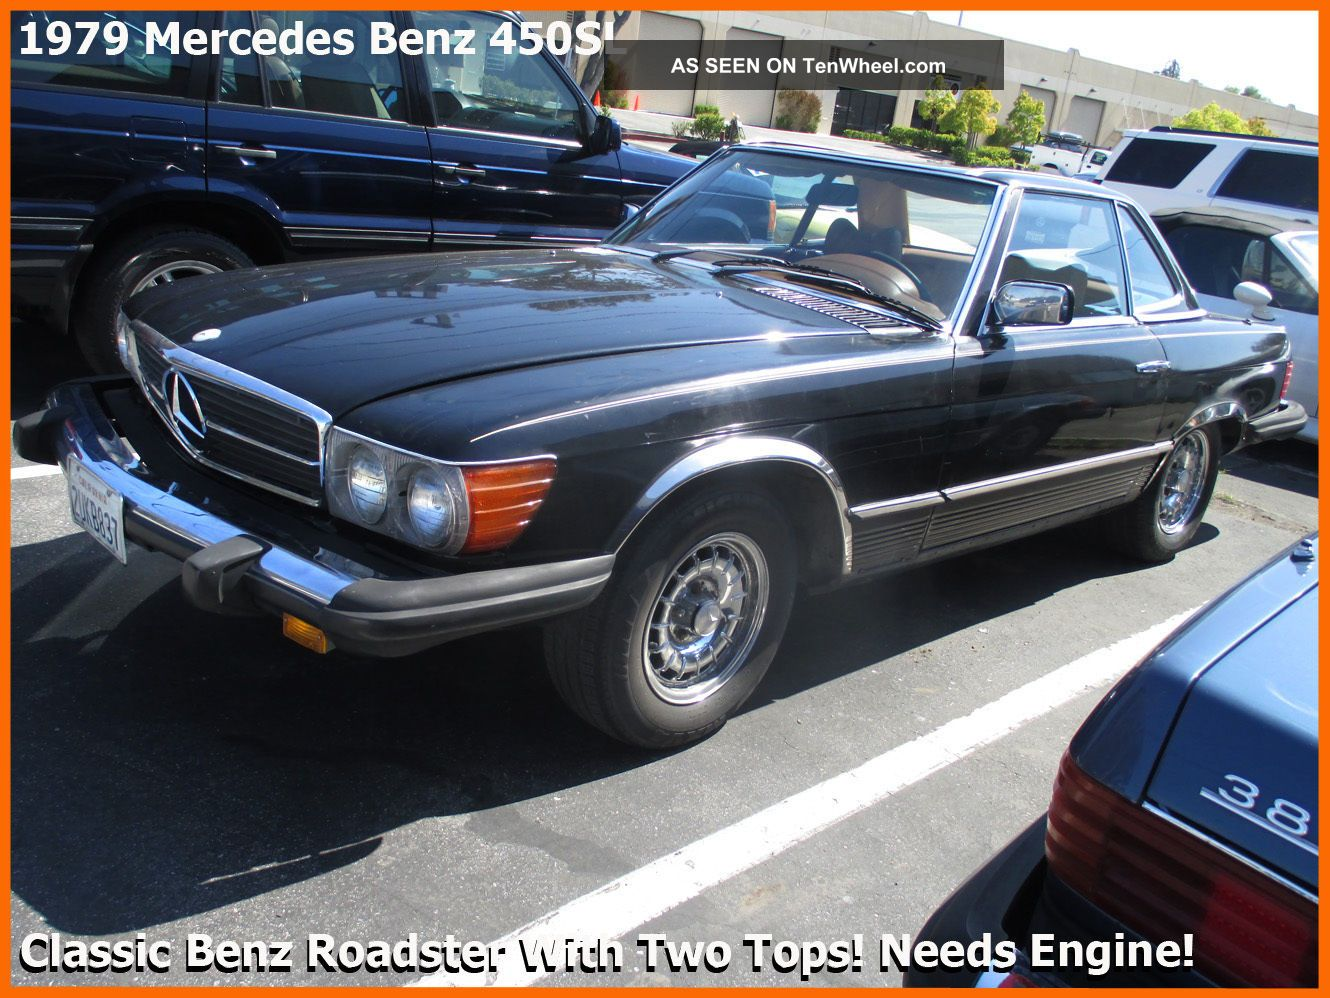 Rare Classic 1979 Mercedes Benz 450sl.  Two Tops + Needs Engine + 400-Series photo